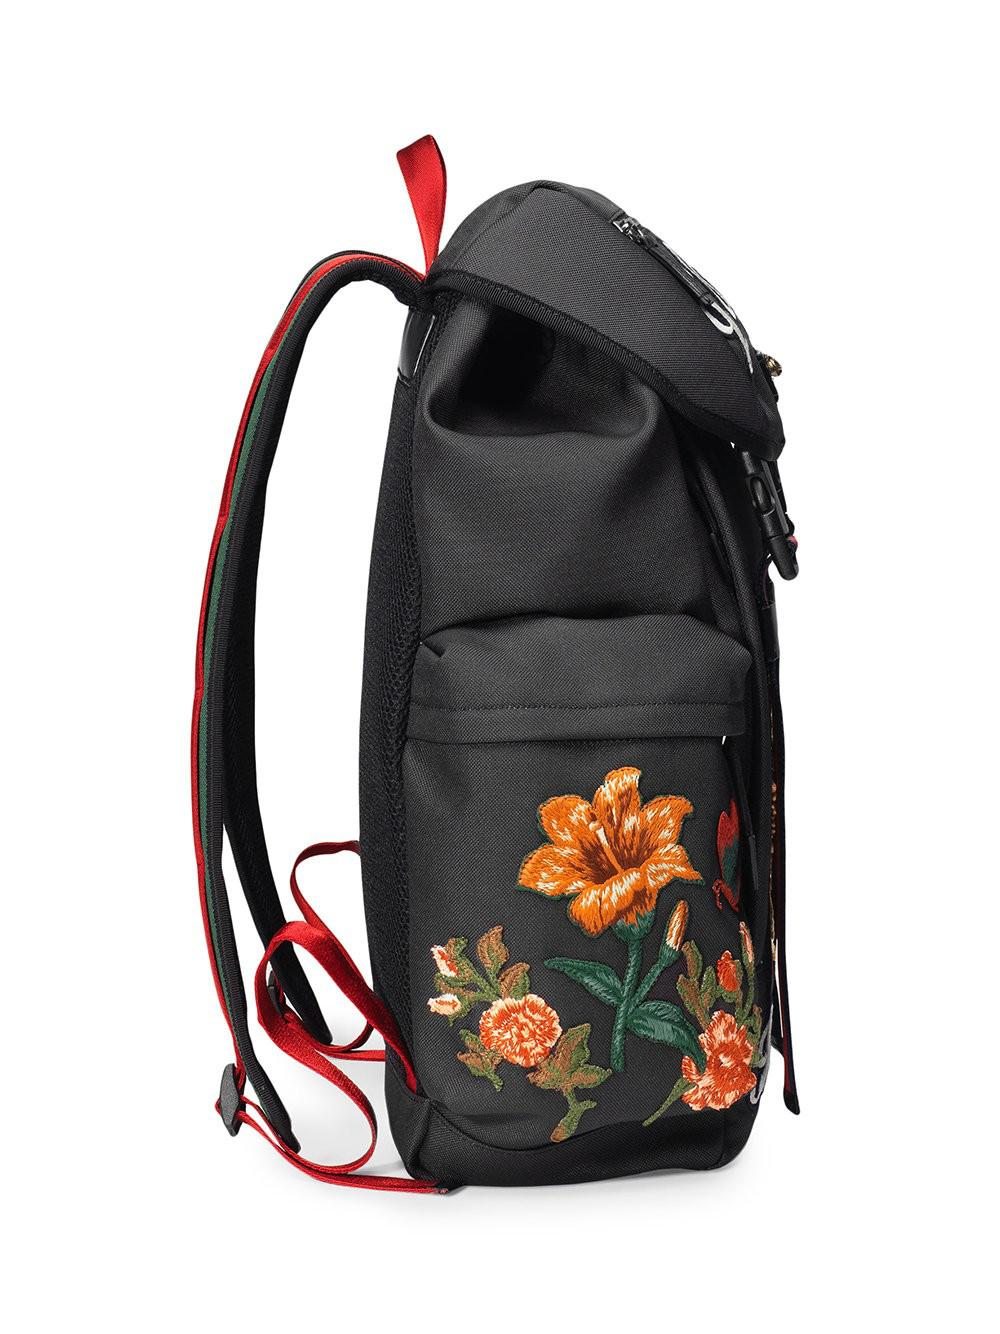 Lyst - Gucci Men's Zaino Embroidered Patch Canvas Backpack